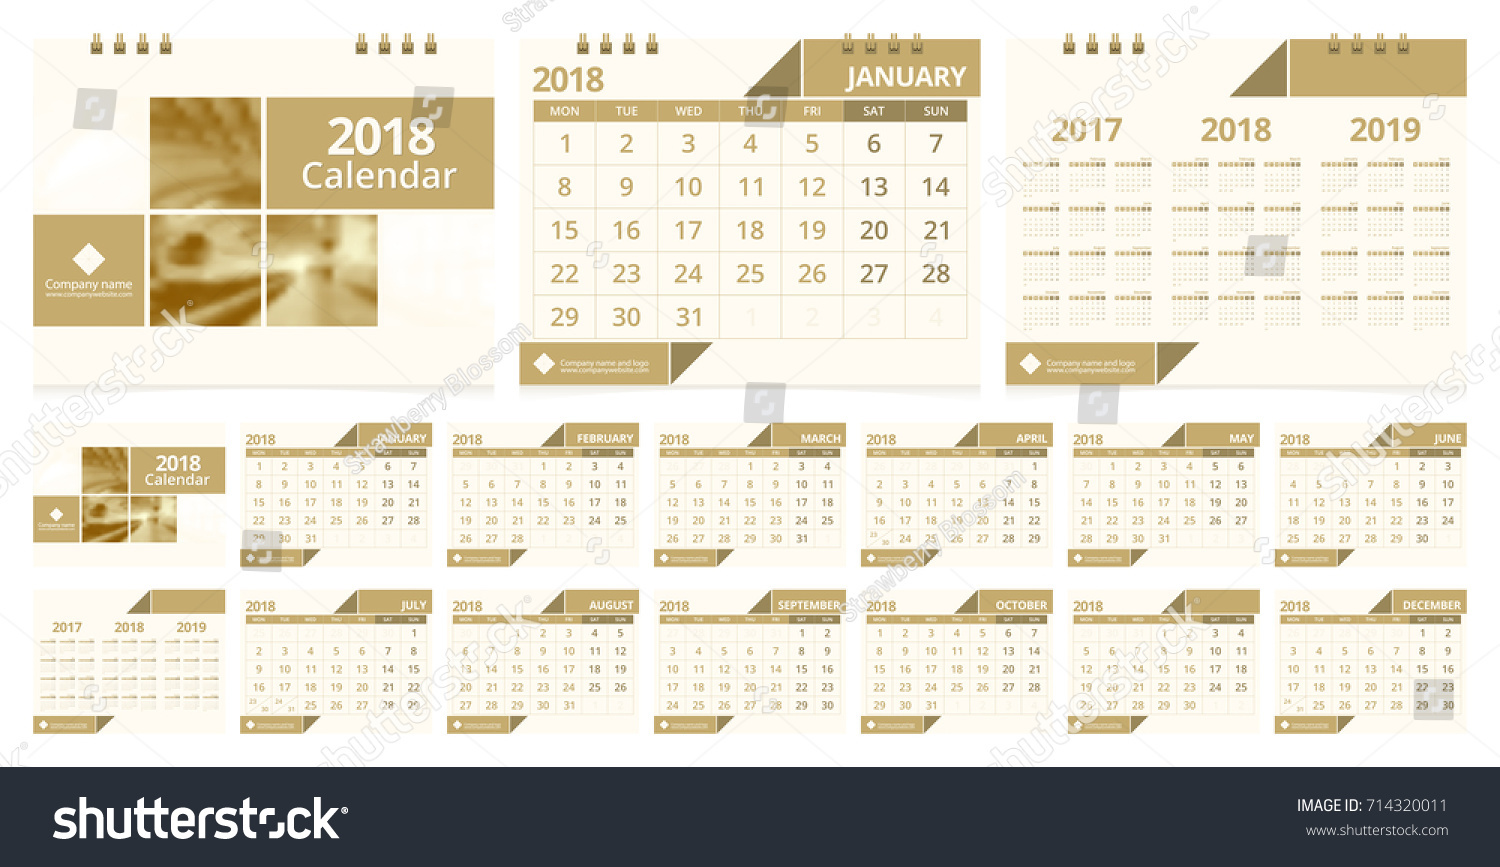 Calendar 2018 Week Start On Monday Stock Vector 714320011 - Shutterstock